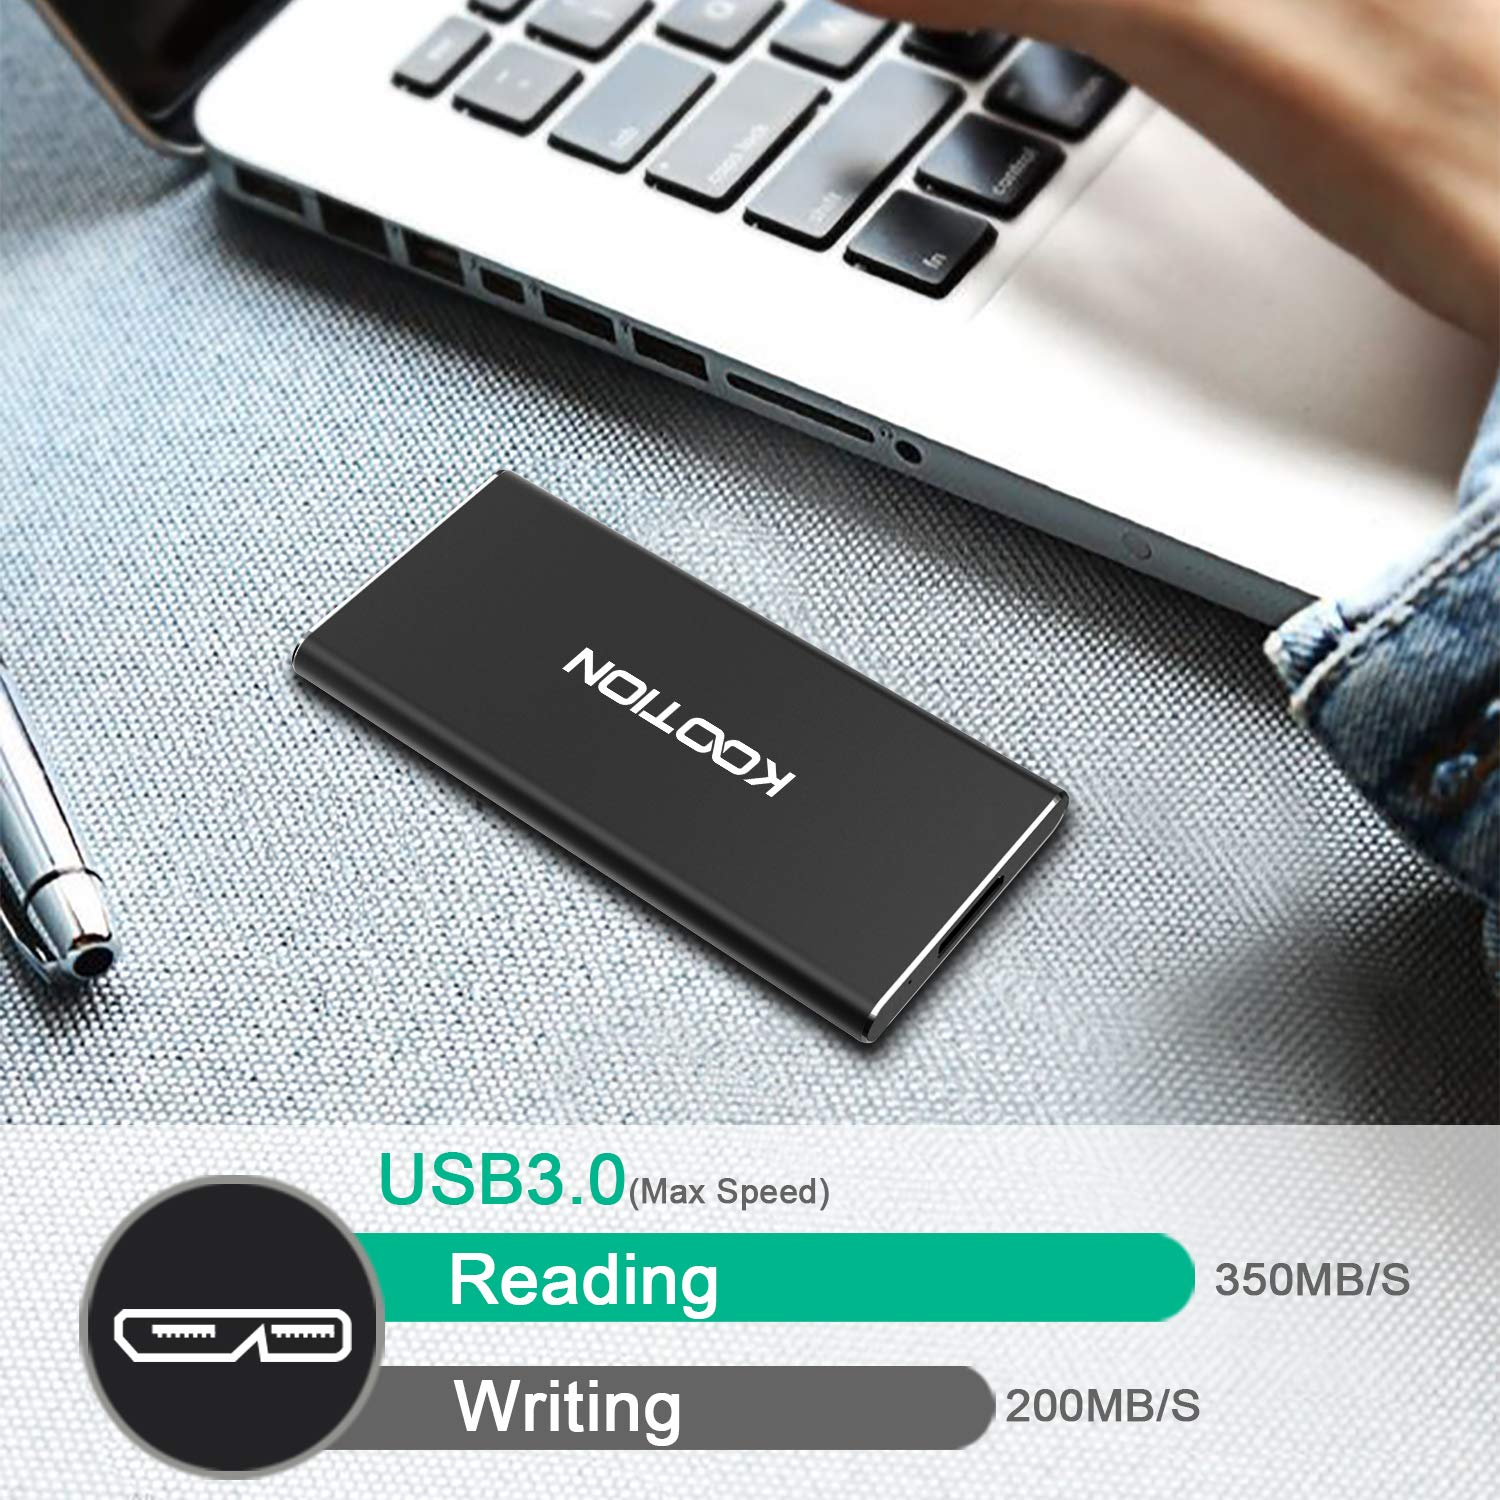 KOOTION 60GB Portable External SSD USB 3.0 High Speed Read & Write up to 400MB/s&300MB/s External Storage Ultra-Slim Solid State Drive for PC, Desktop, Laptop, MacBook by KOOTION (Image #2)